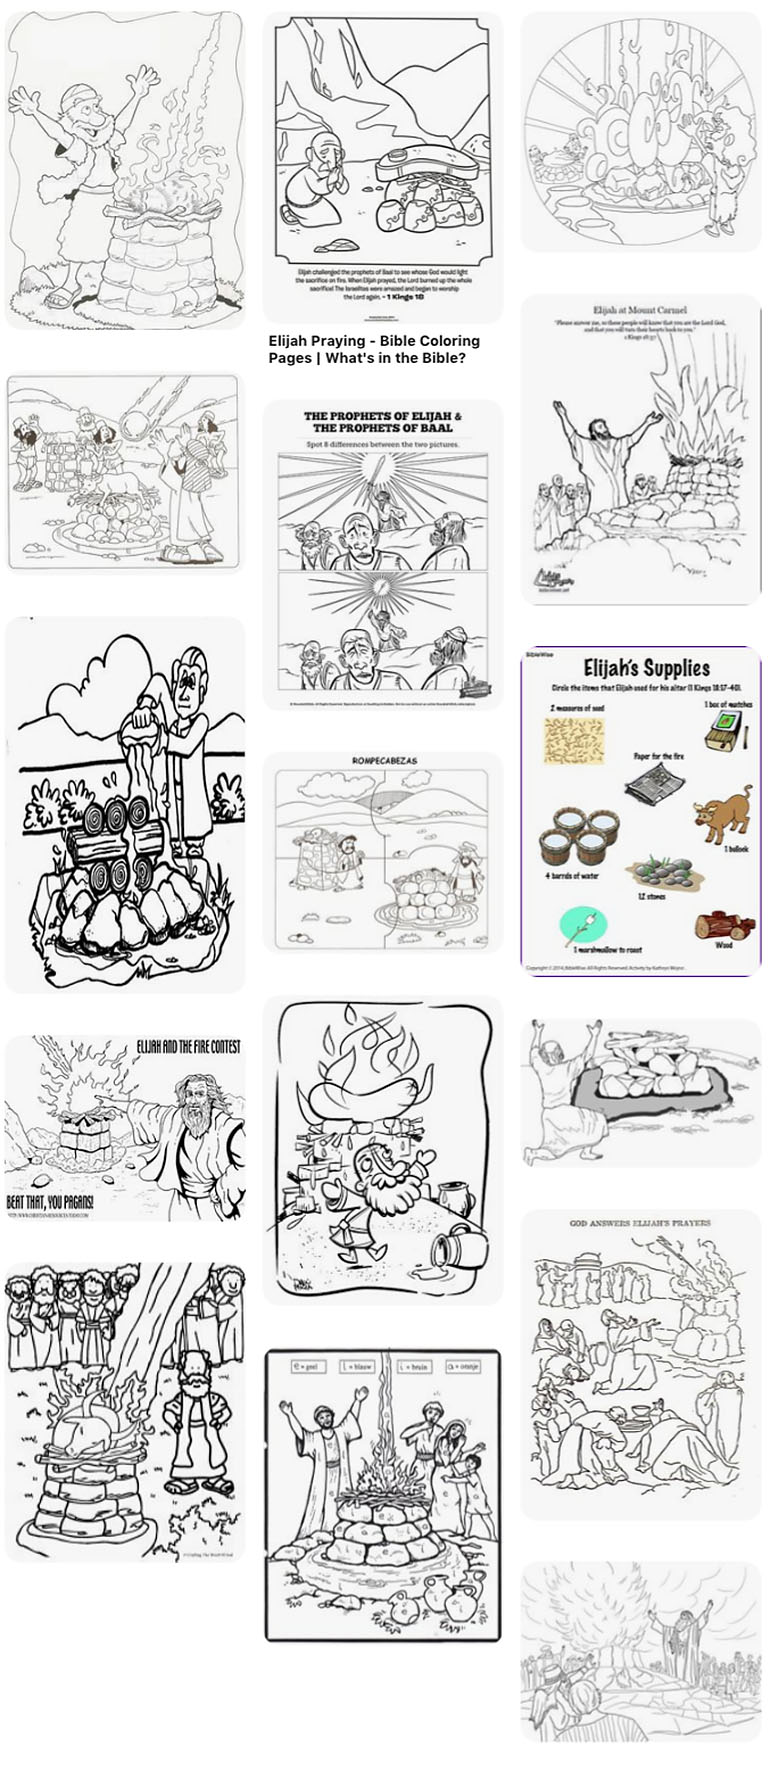 History Coloring Pages – Volume 1 | Bible coloring pages, Coloring ... | 1771x770